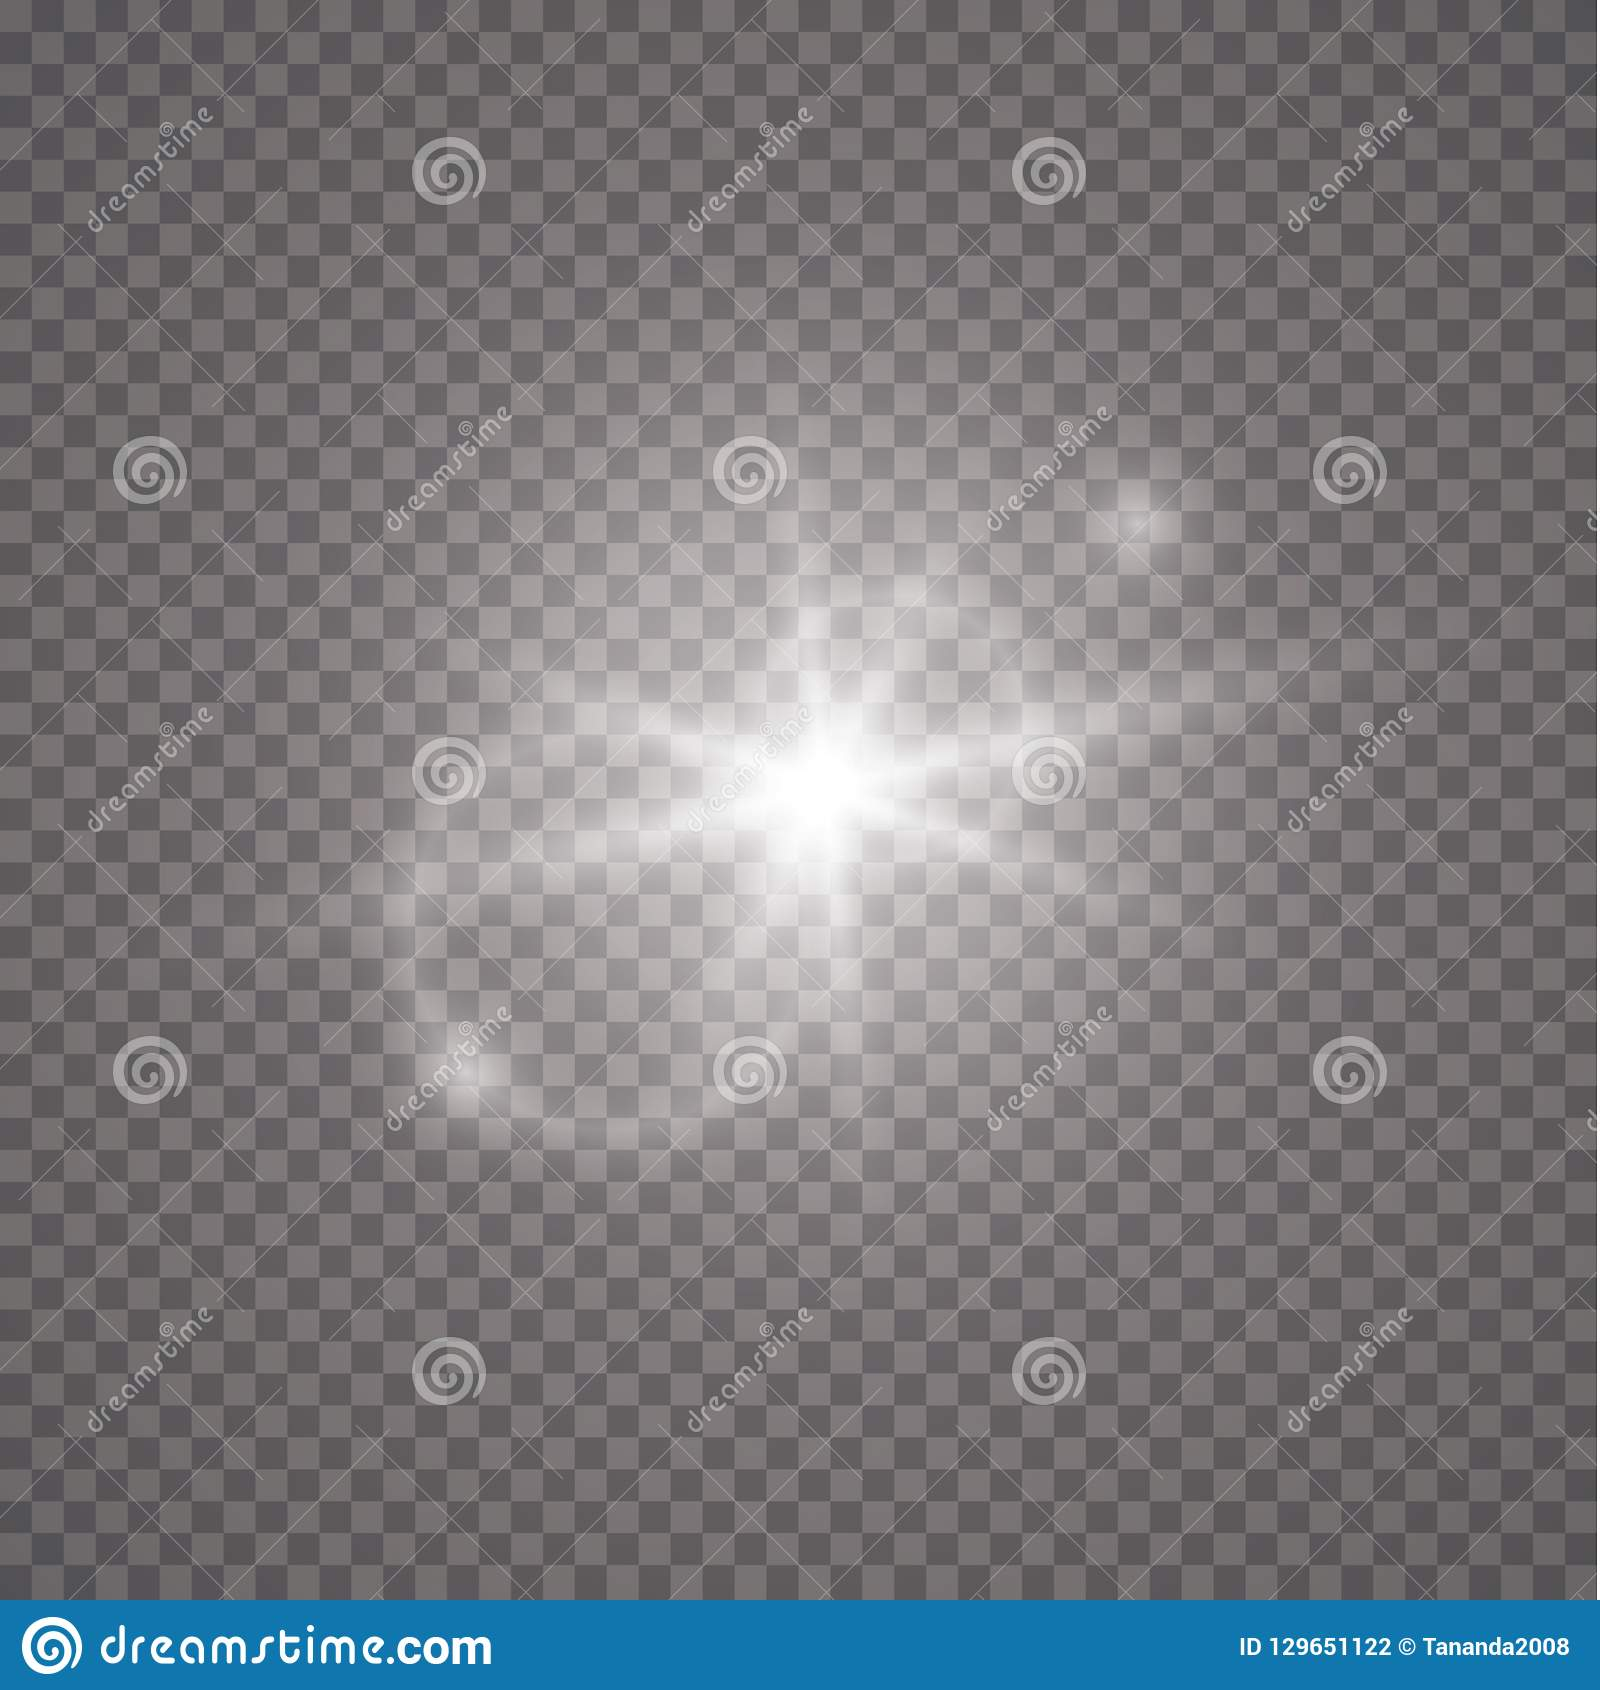 Sun flash with rays and spotlight. Vector transparent sunlight special lens flare light effect.